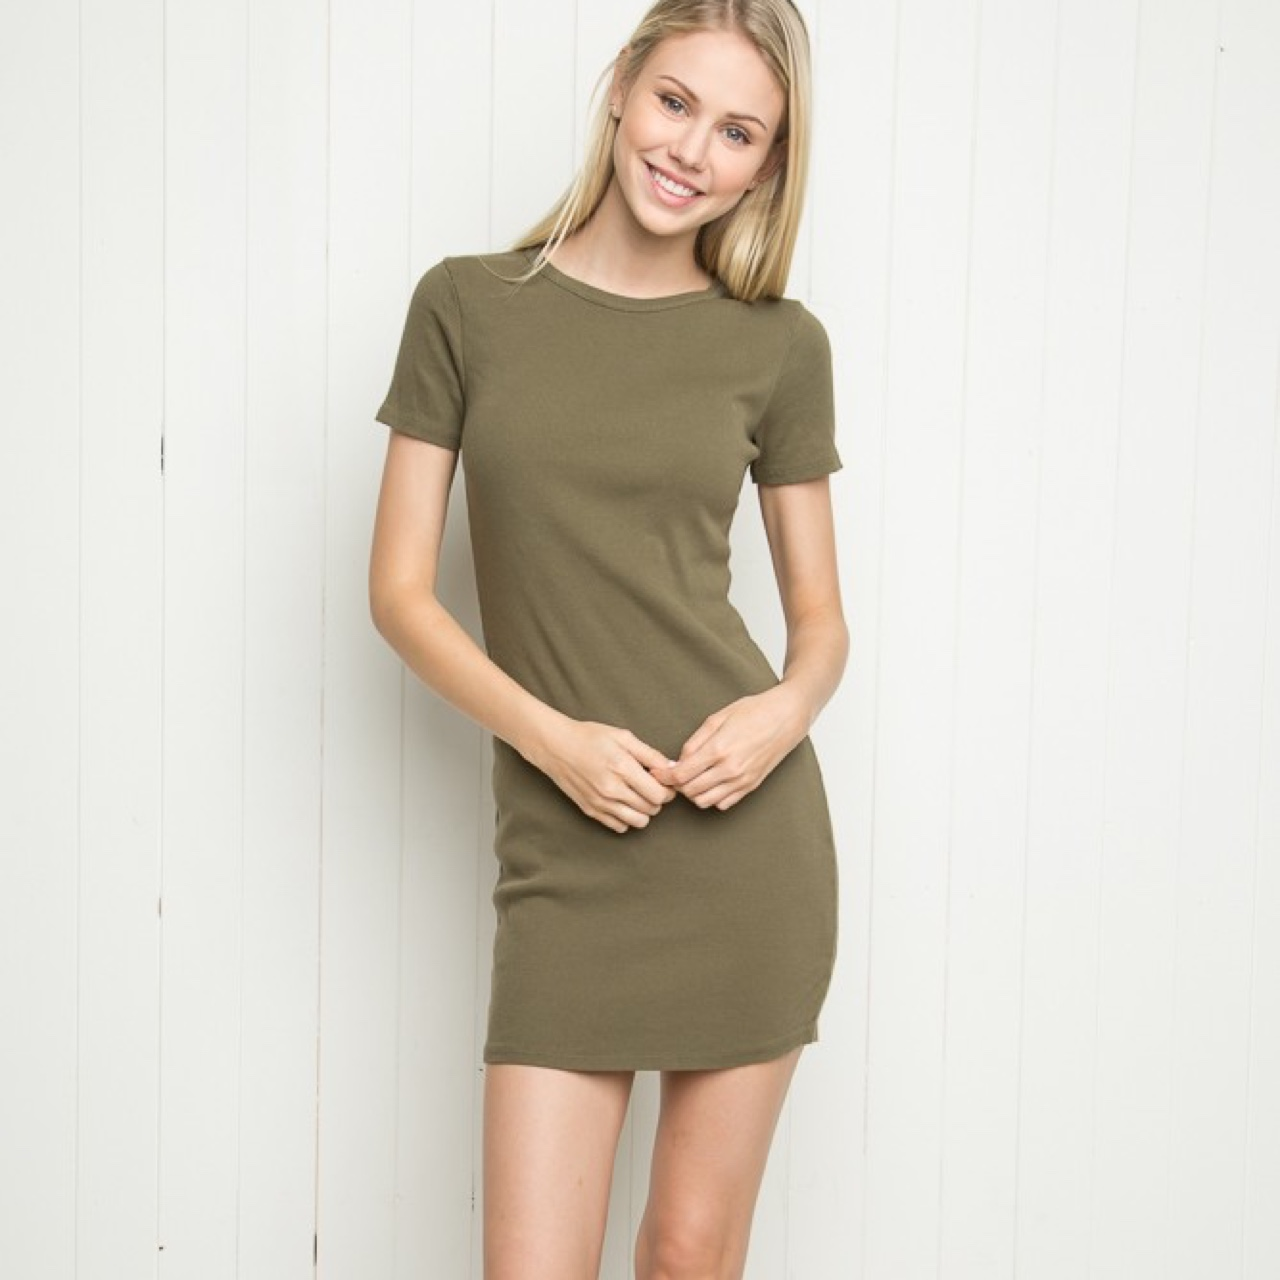 Brandy Melville Olive Green Jenelle Dress! Brand new